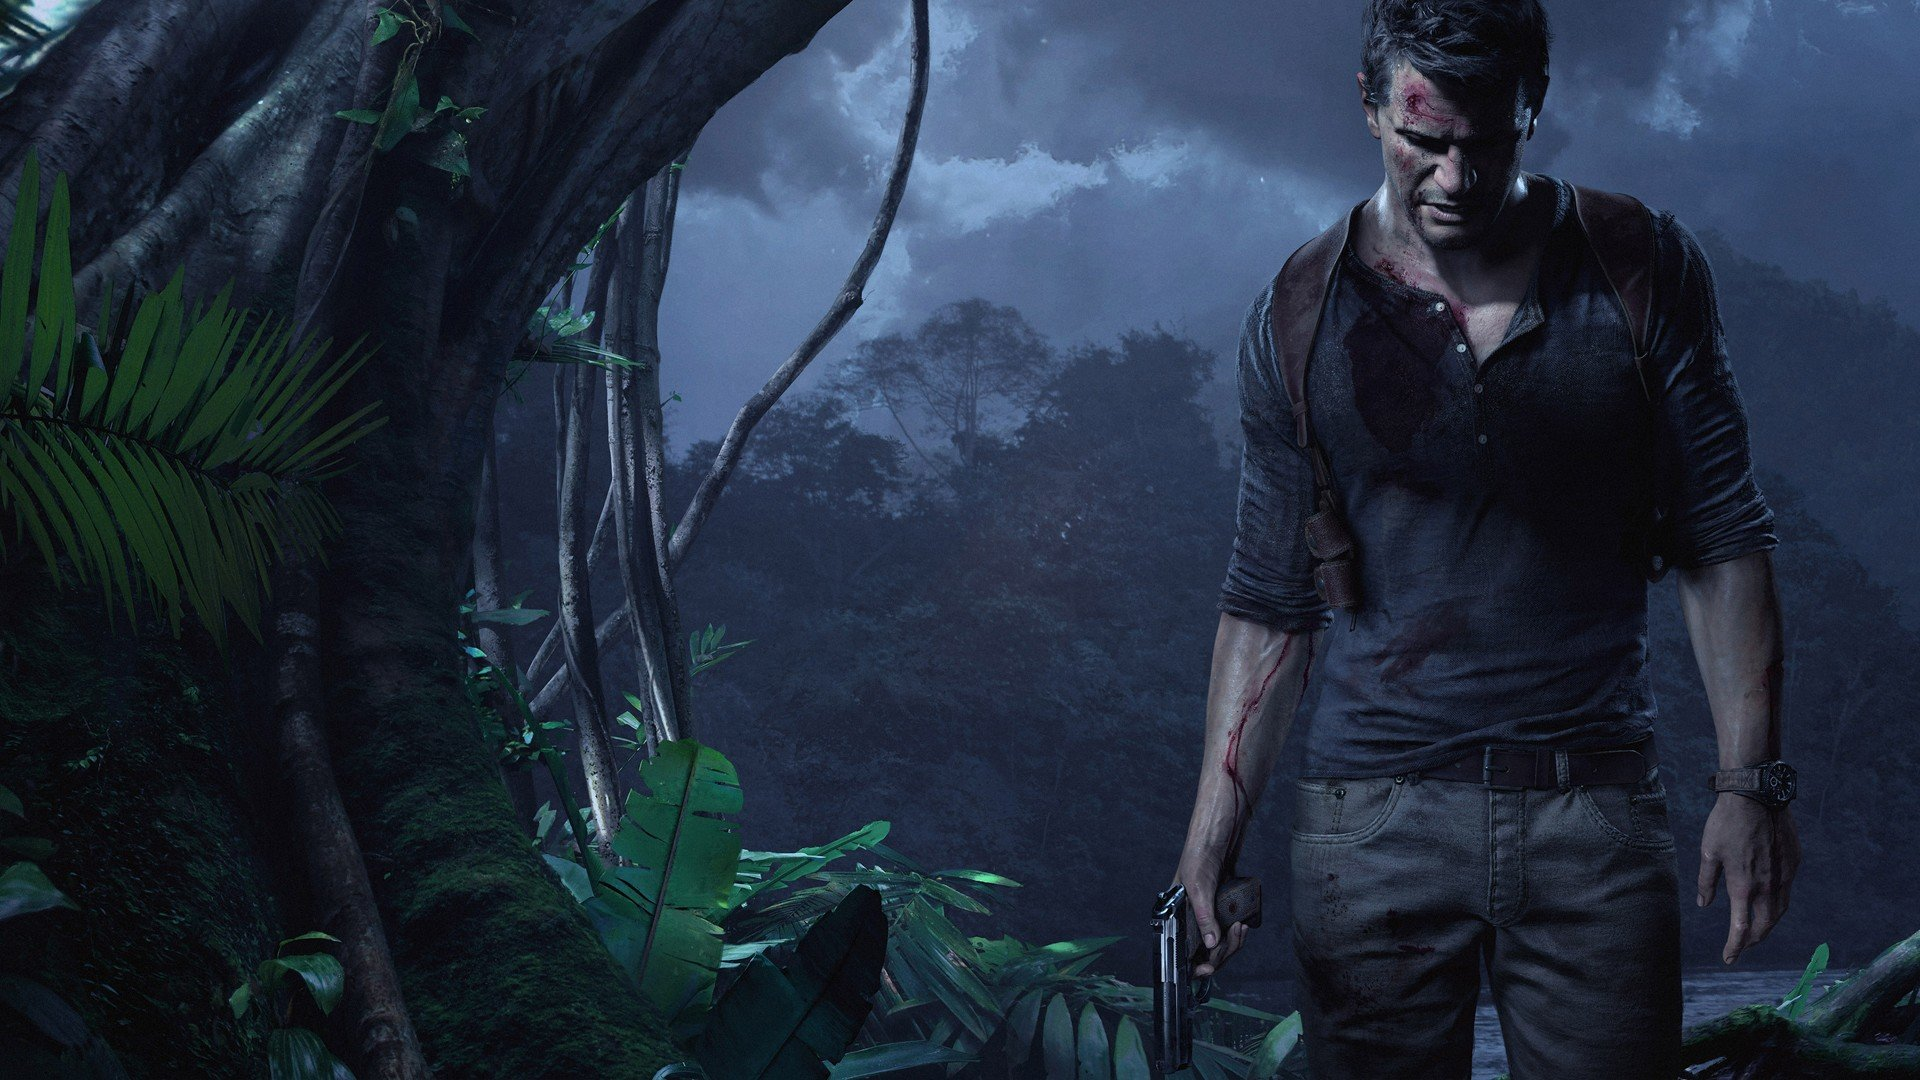 Download hd 1080p Uncharted 4: A Thief's End desktop wallpaper ID:498210 for free